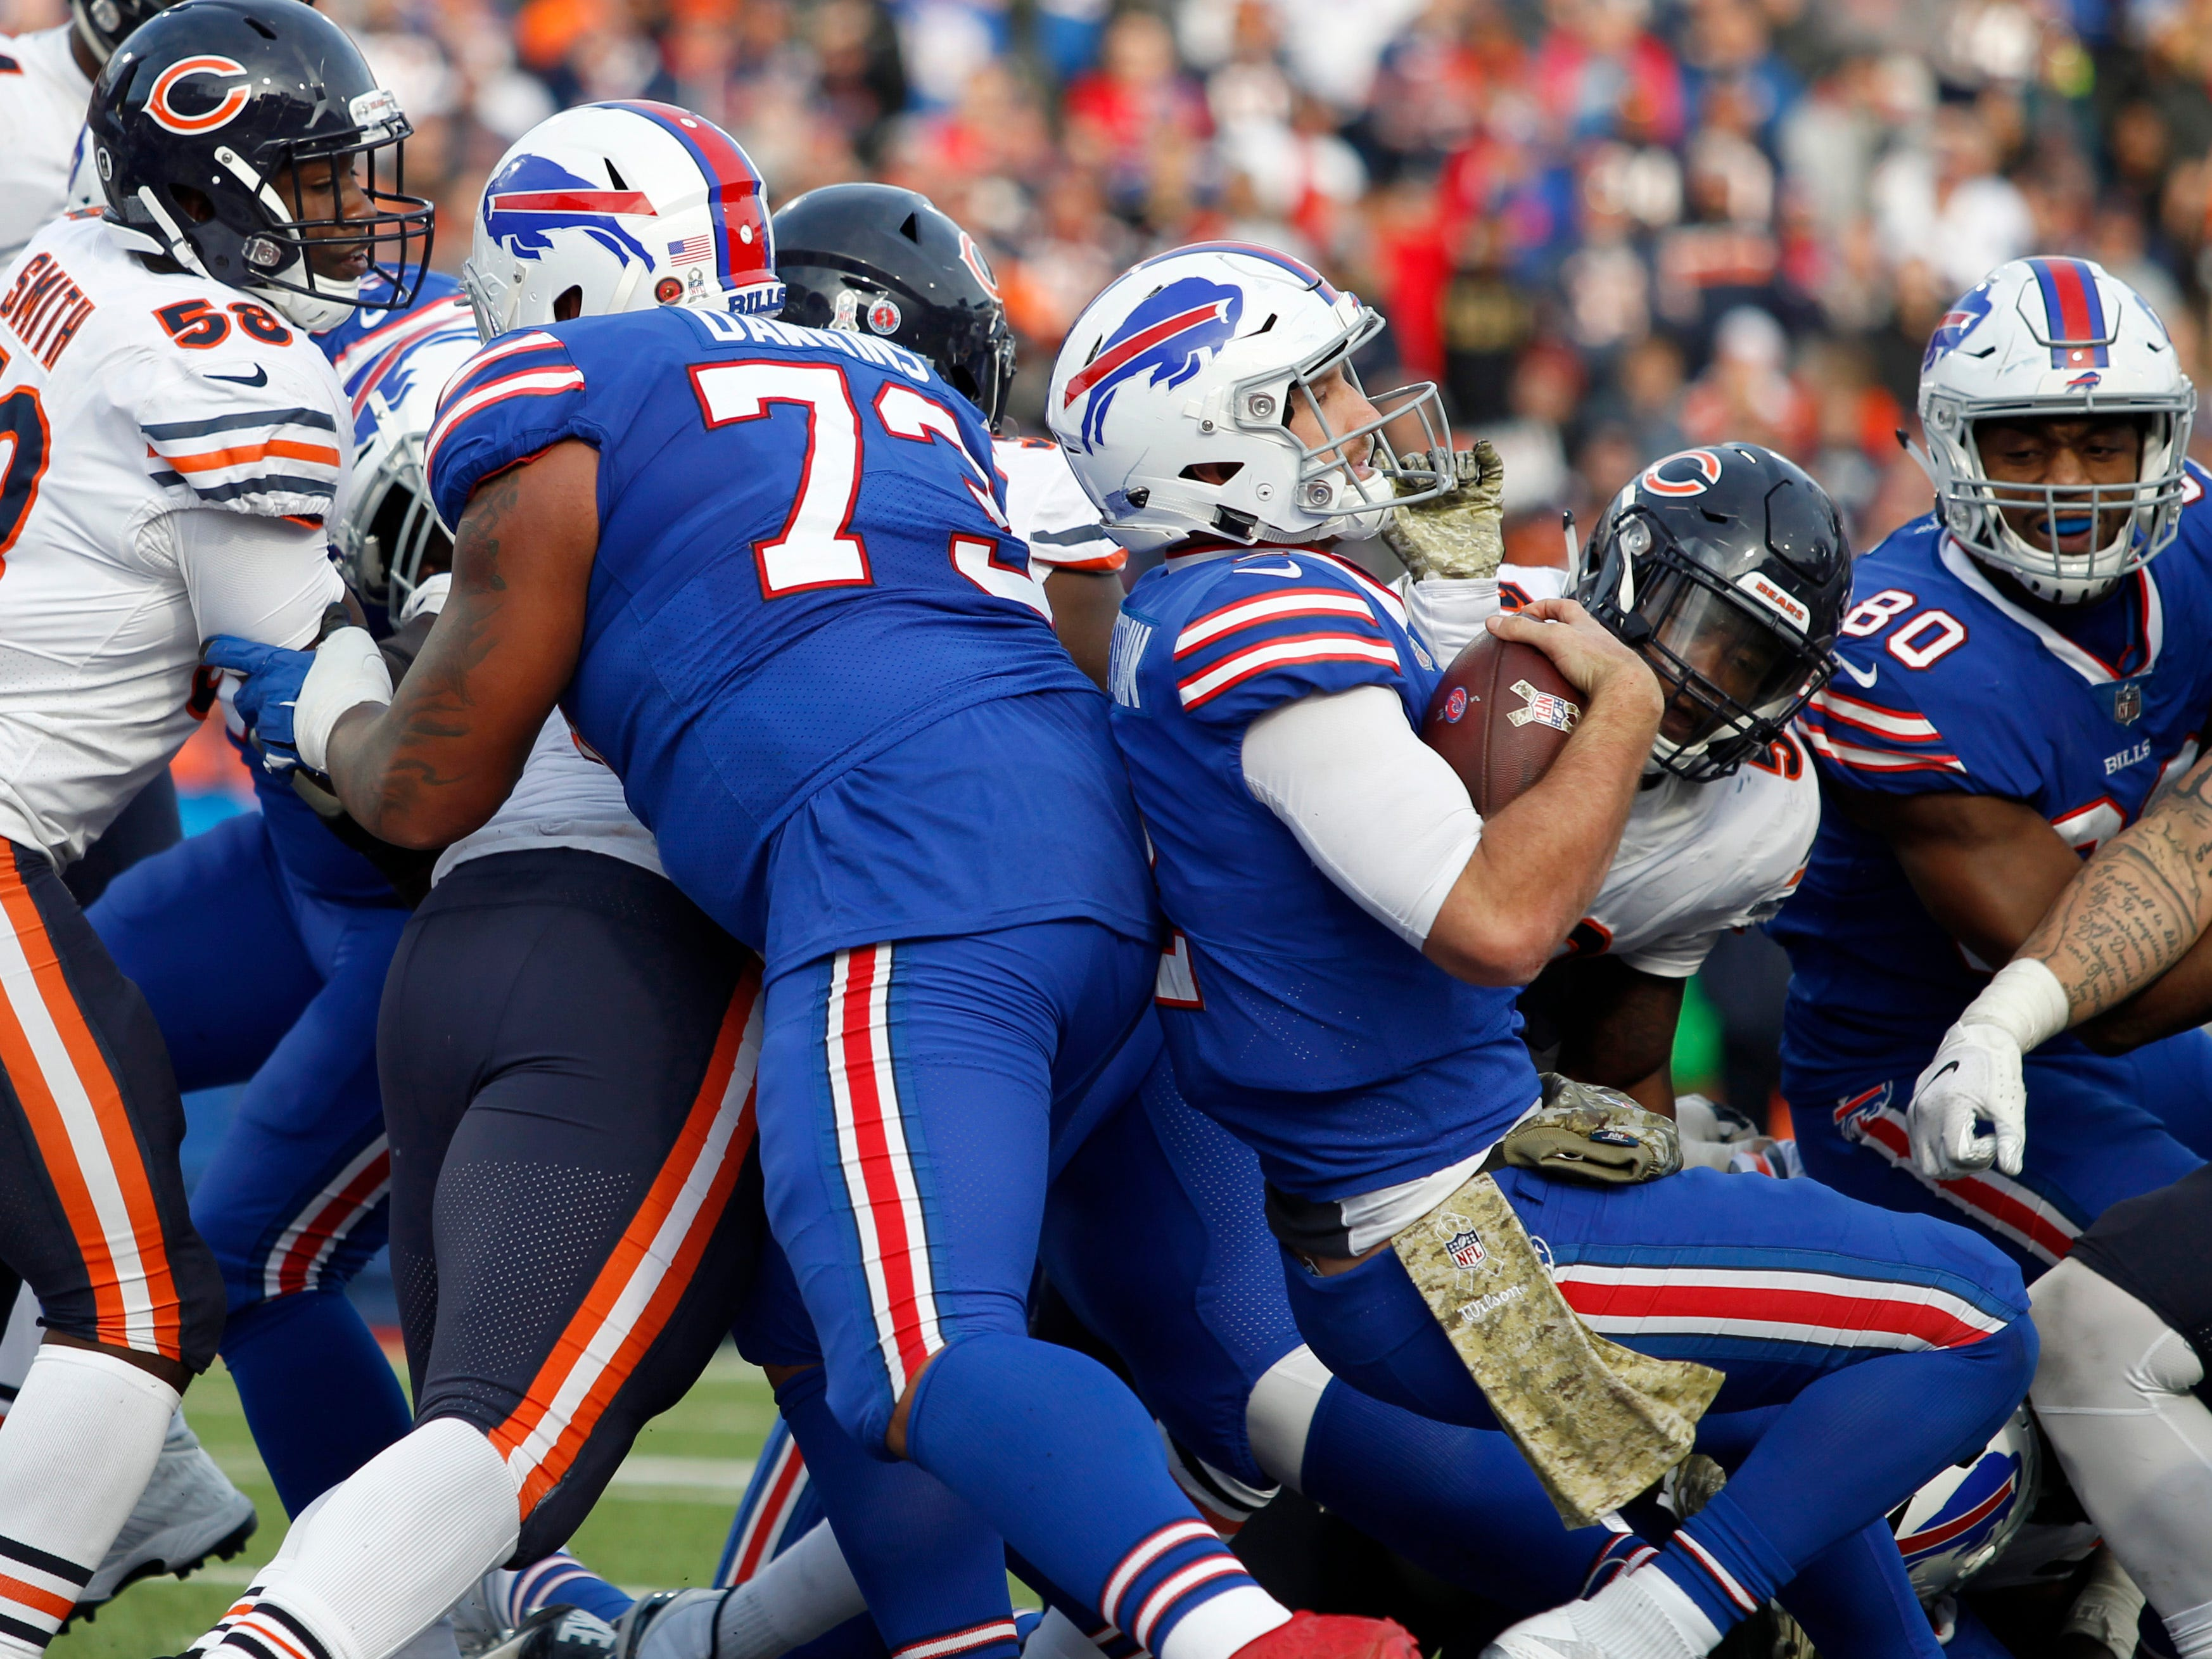 31. Bills (2-7) | Last game: Lost to the Bears, 41-9 | Previous ranking: 31